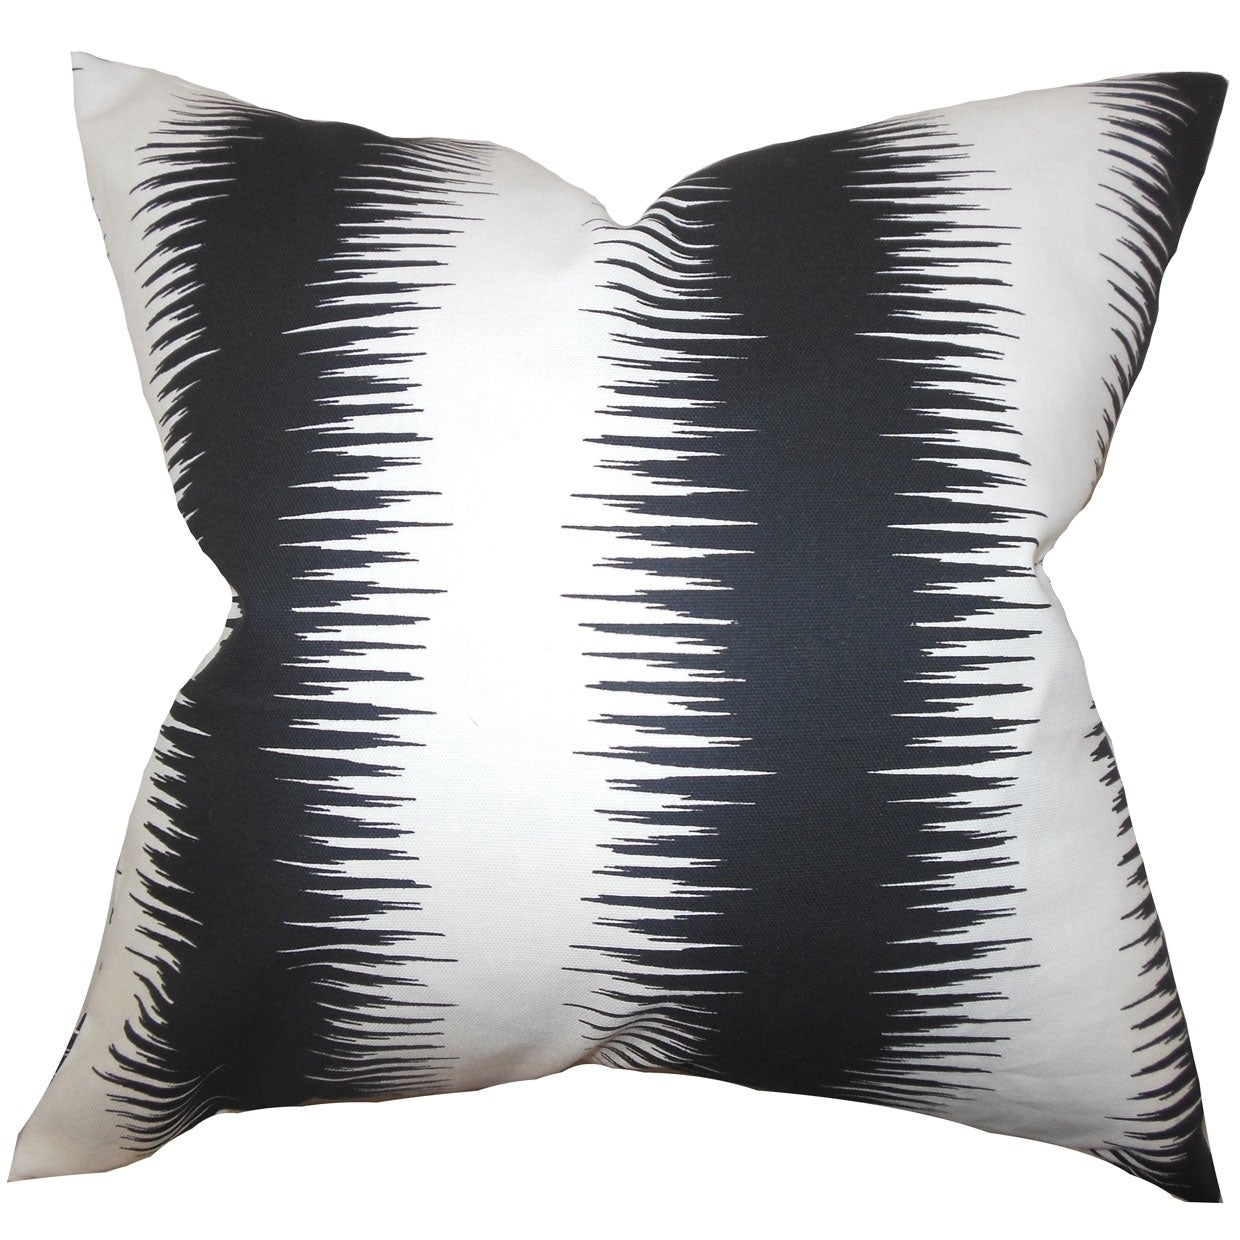 The Pillow Collection Aebba Tile Pillow Black